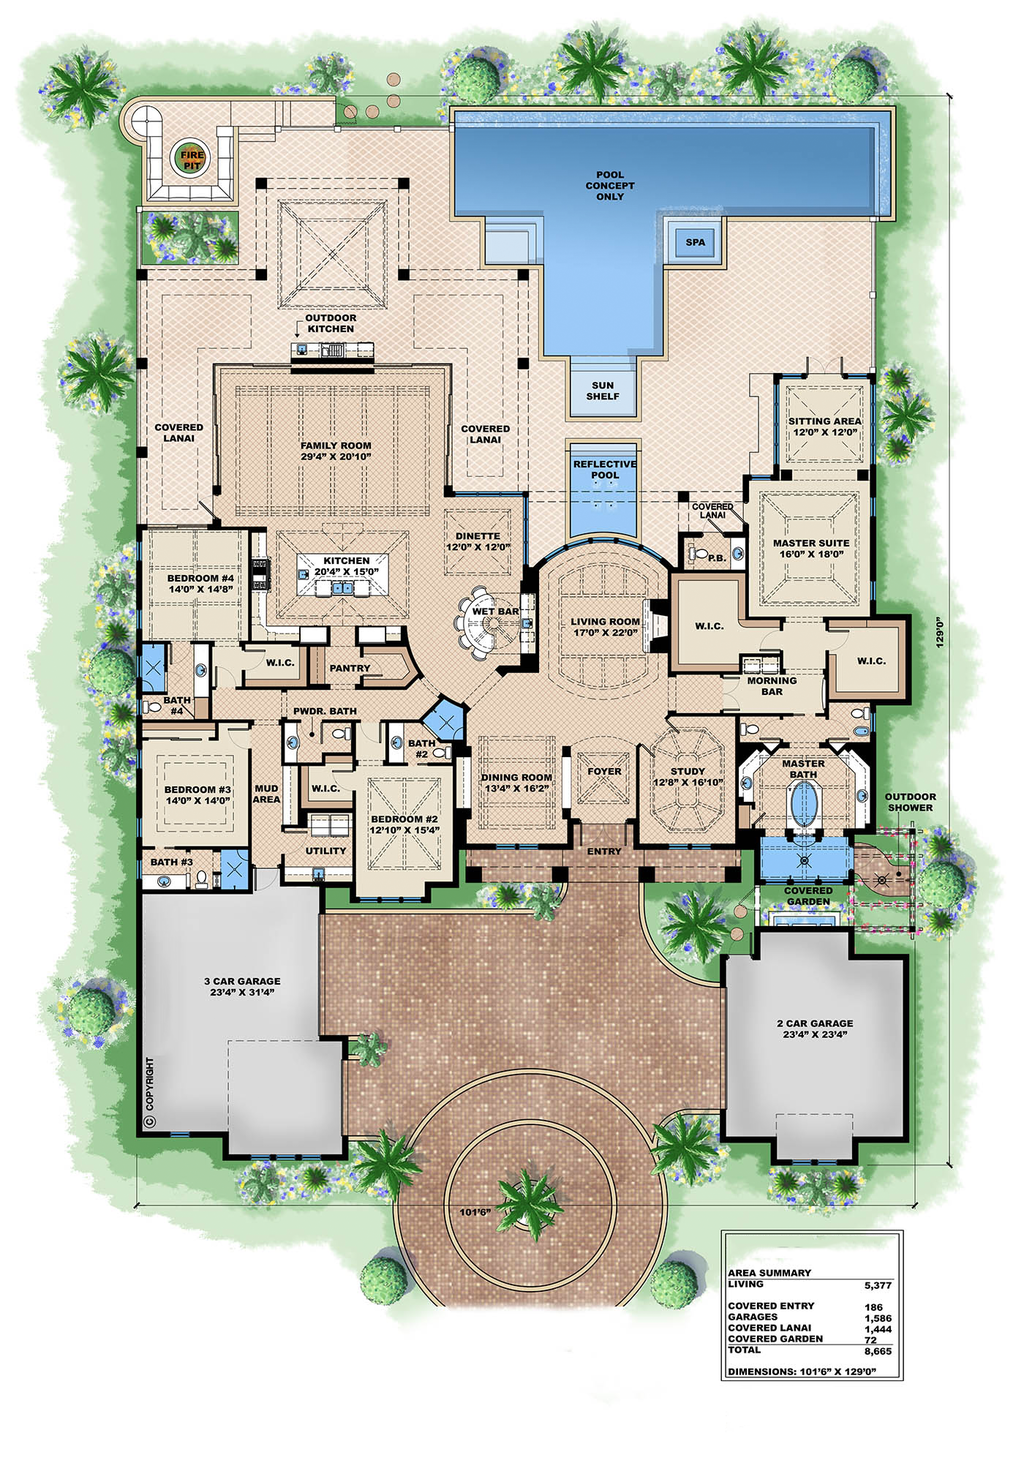 European 4 Beds 475 Baths 8665 SqFt Plan 27 455 Main Floor Plan